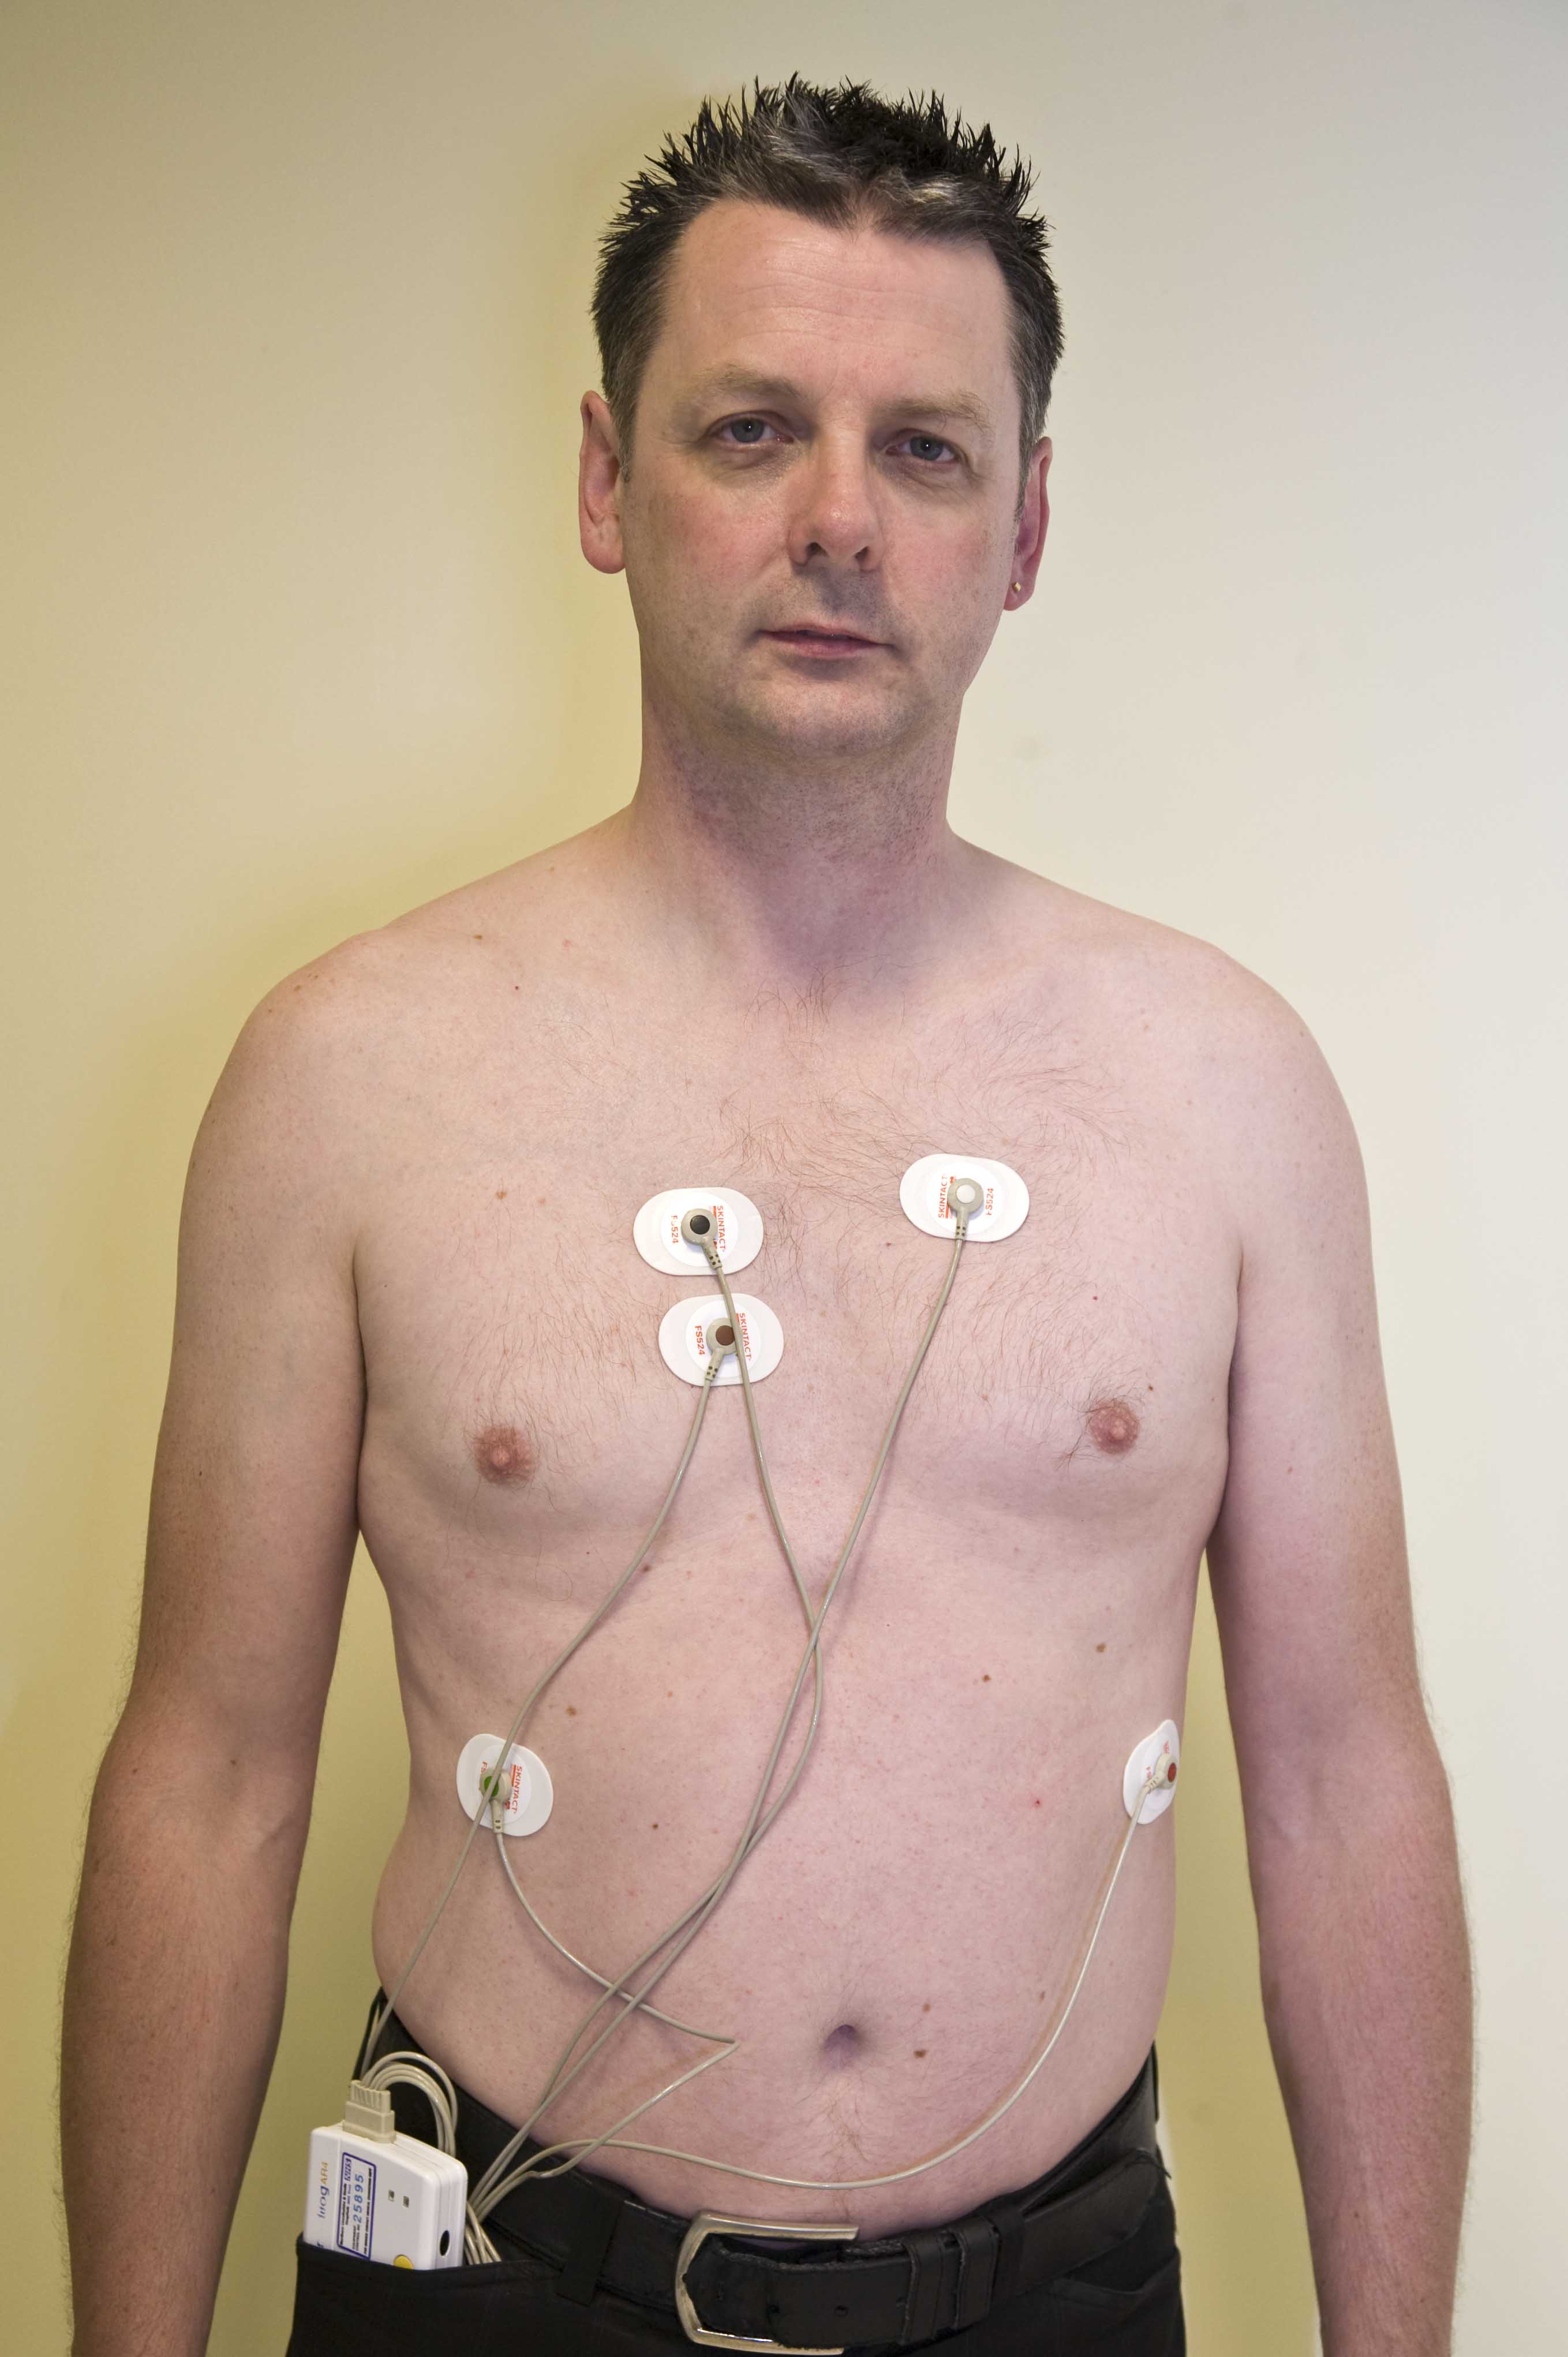 Patient wearing a Holter monitor